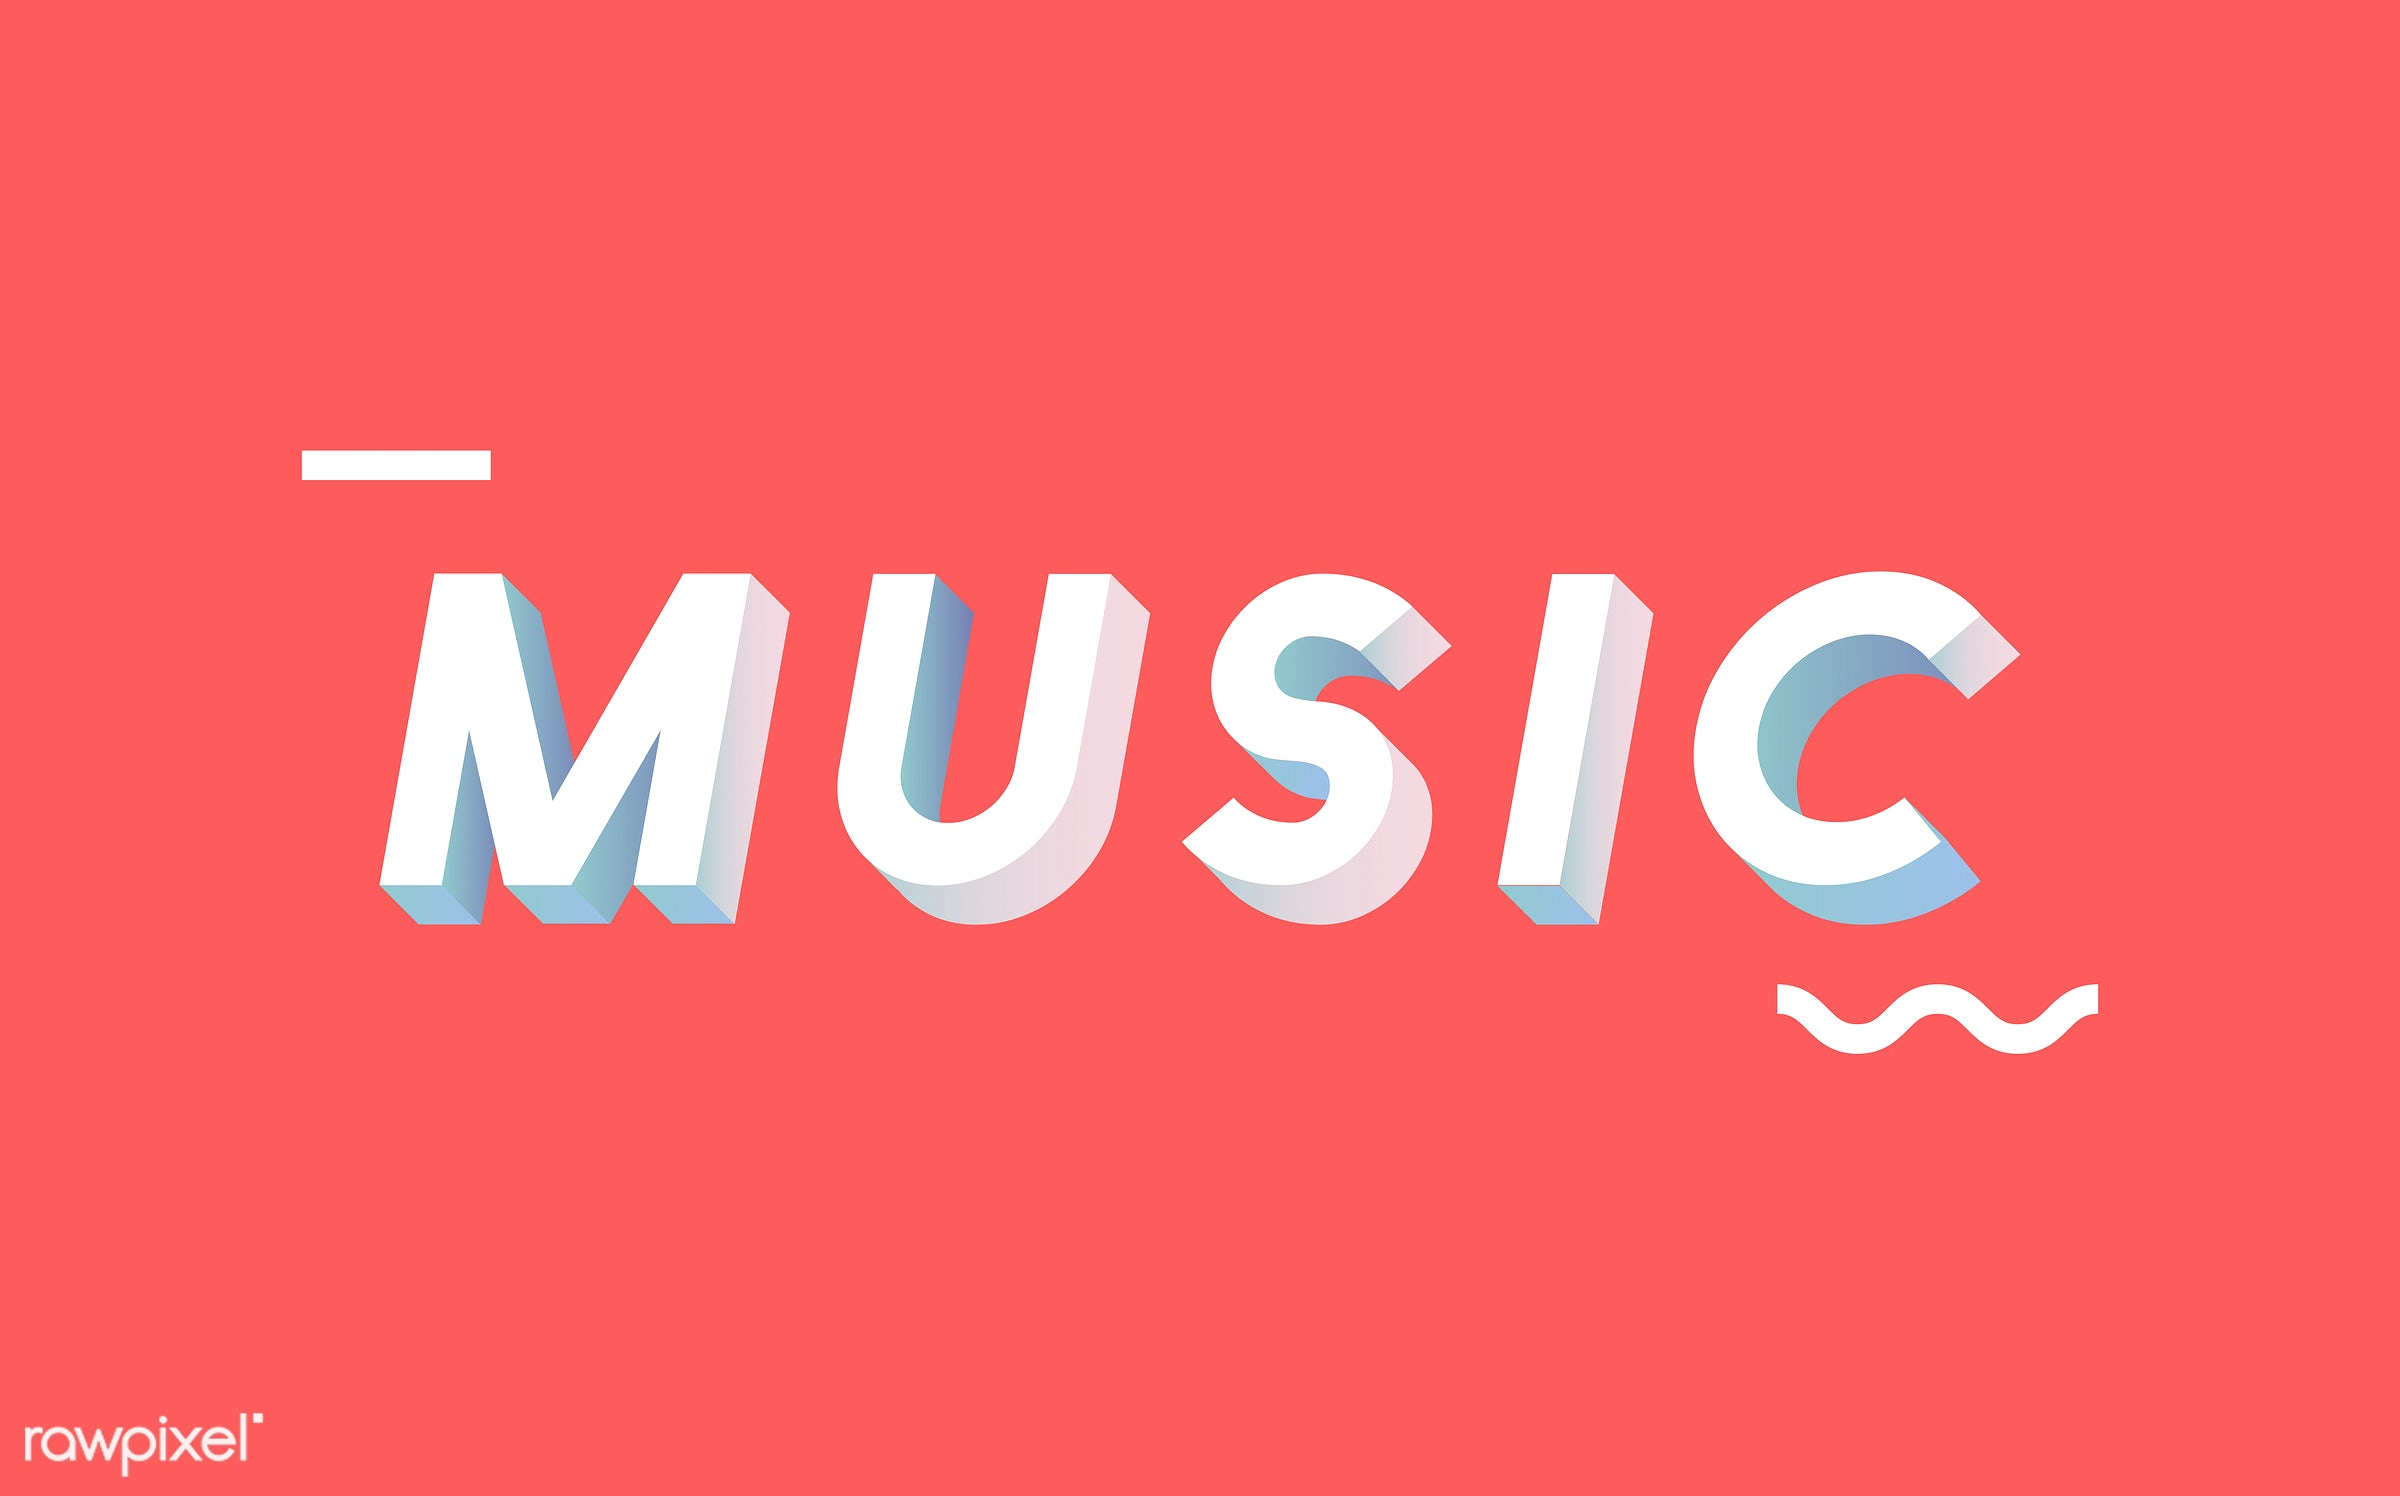 3d, colorful, graphic, illustration, music, neon, red, three dimensional, vector, white, word